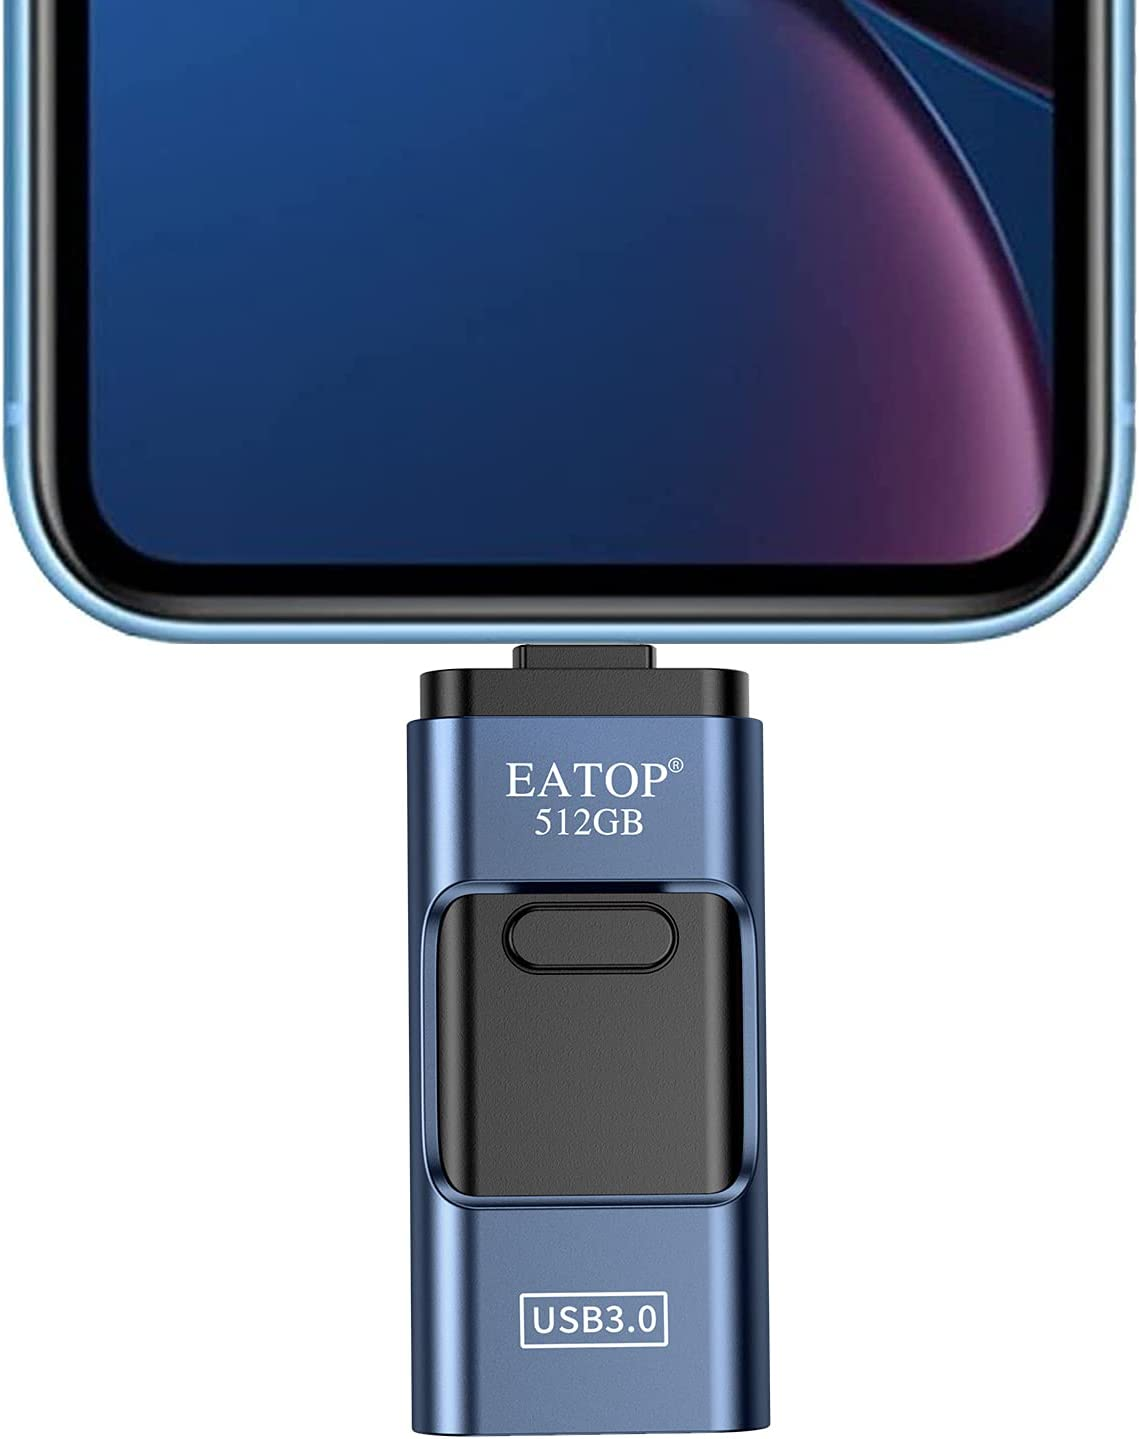 EATOP USB3.0 Flash Drive 512GB, USB External Storage Memory Stick Thumb Drive Photo Stick Compatible with iPhone, Android, Computers (Dark Blue)